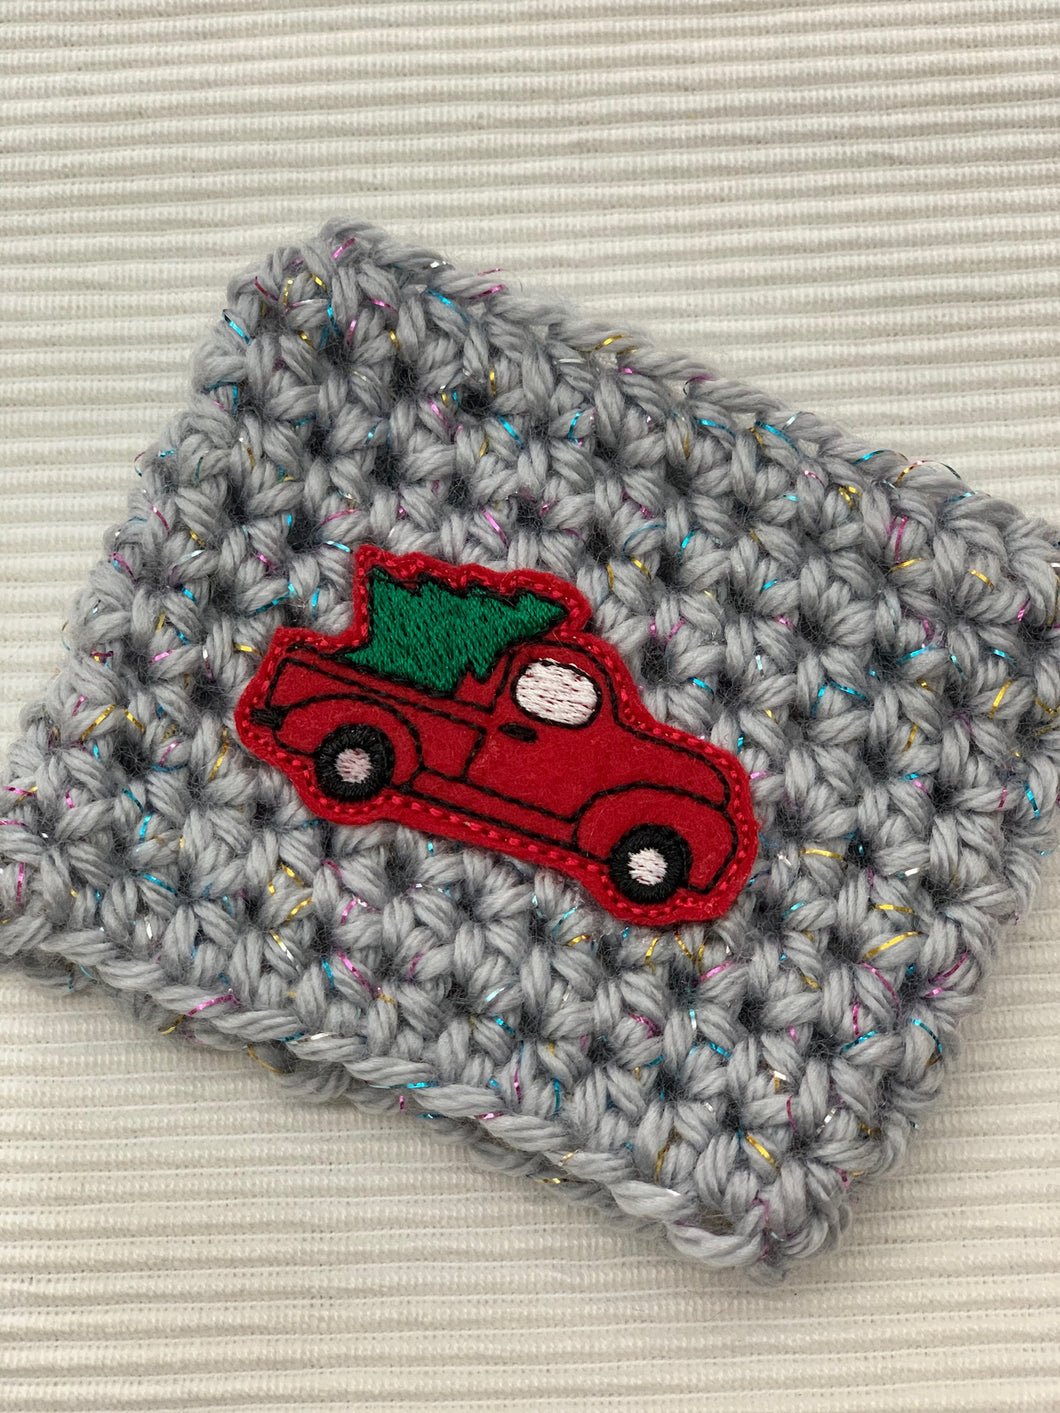 Vintage Christmas Truck Sparkle Gray Reusable Eco Friendly Hot and Cold Beverage Cup Cozy